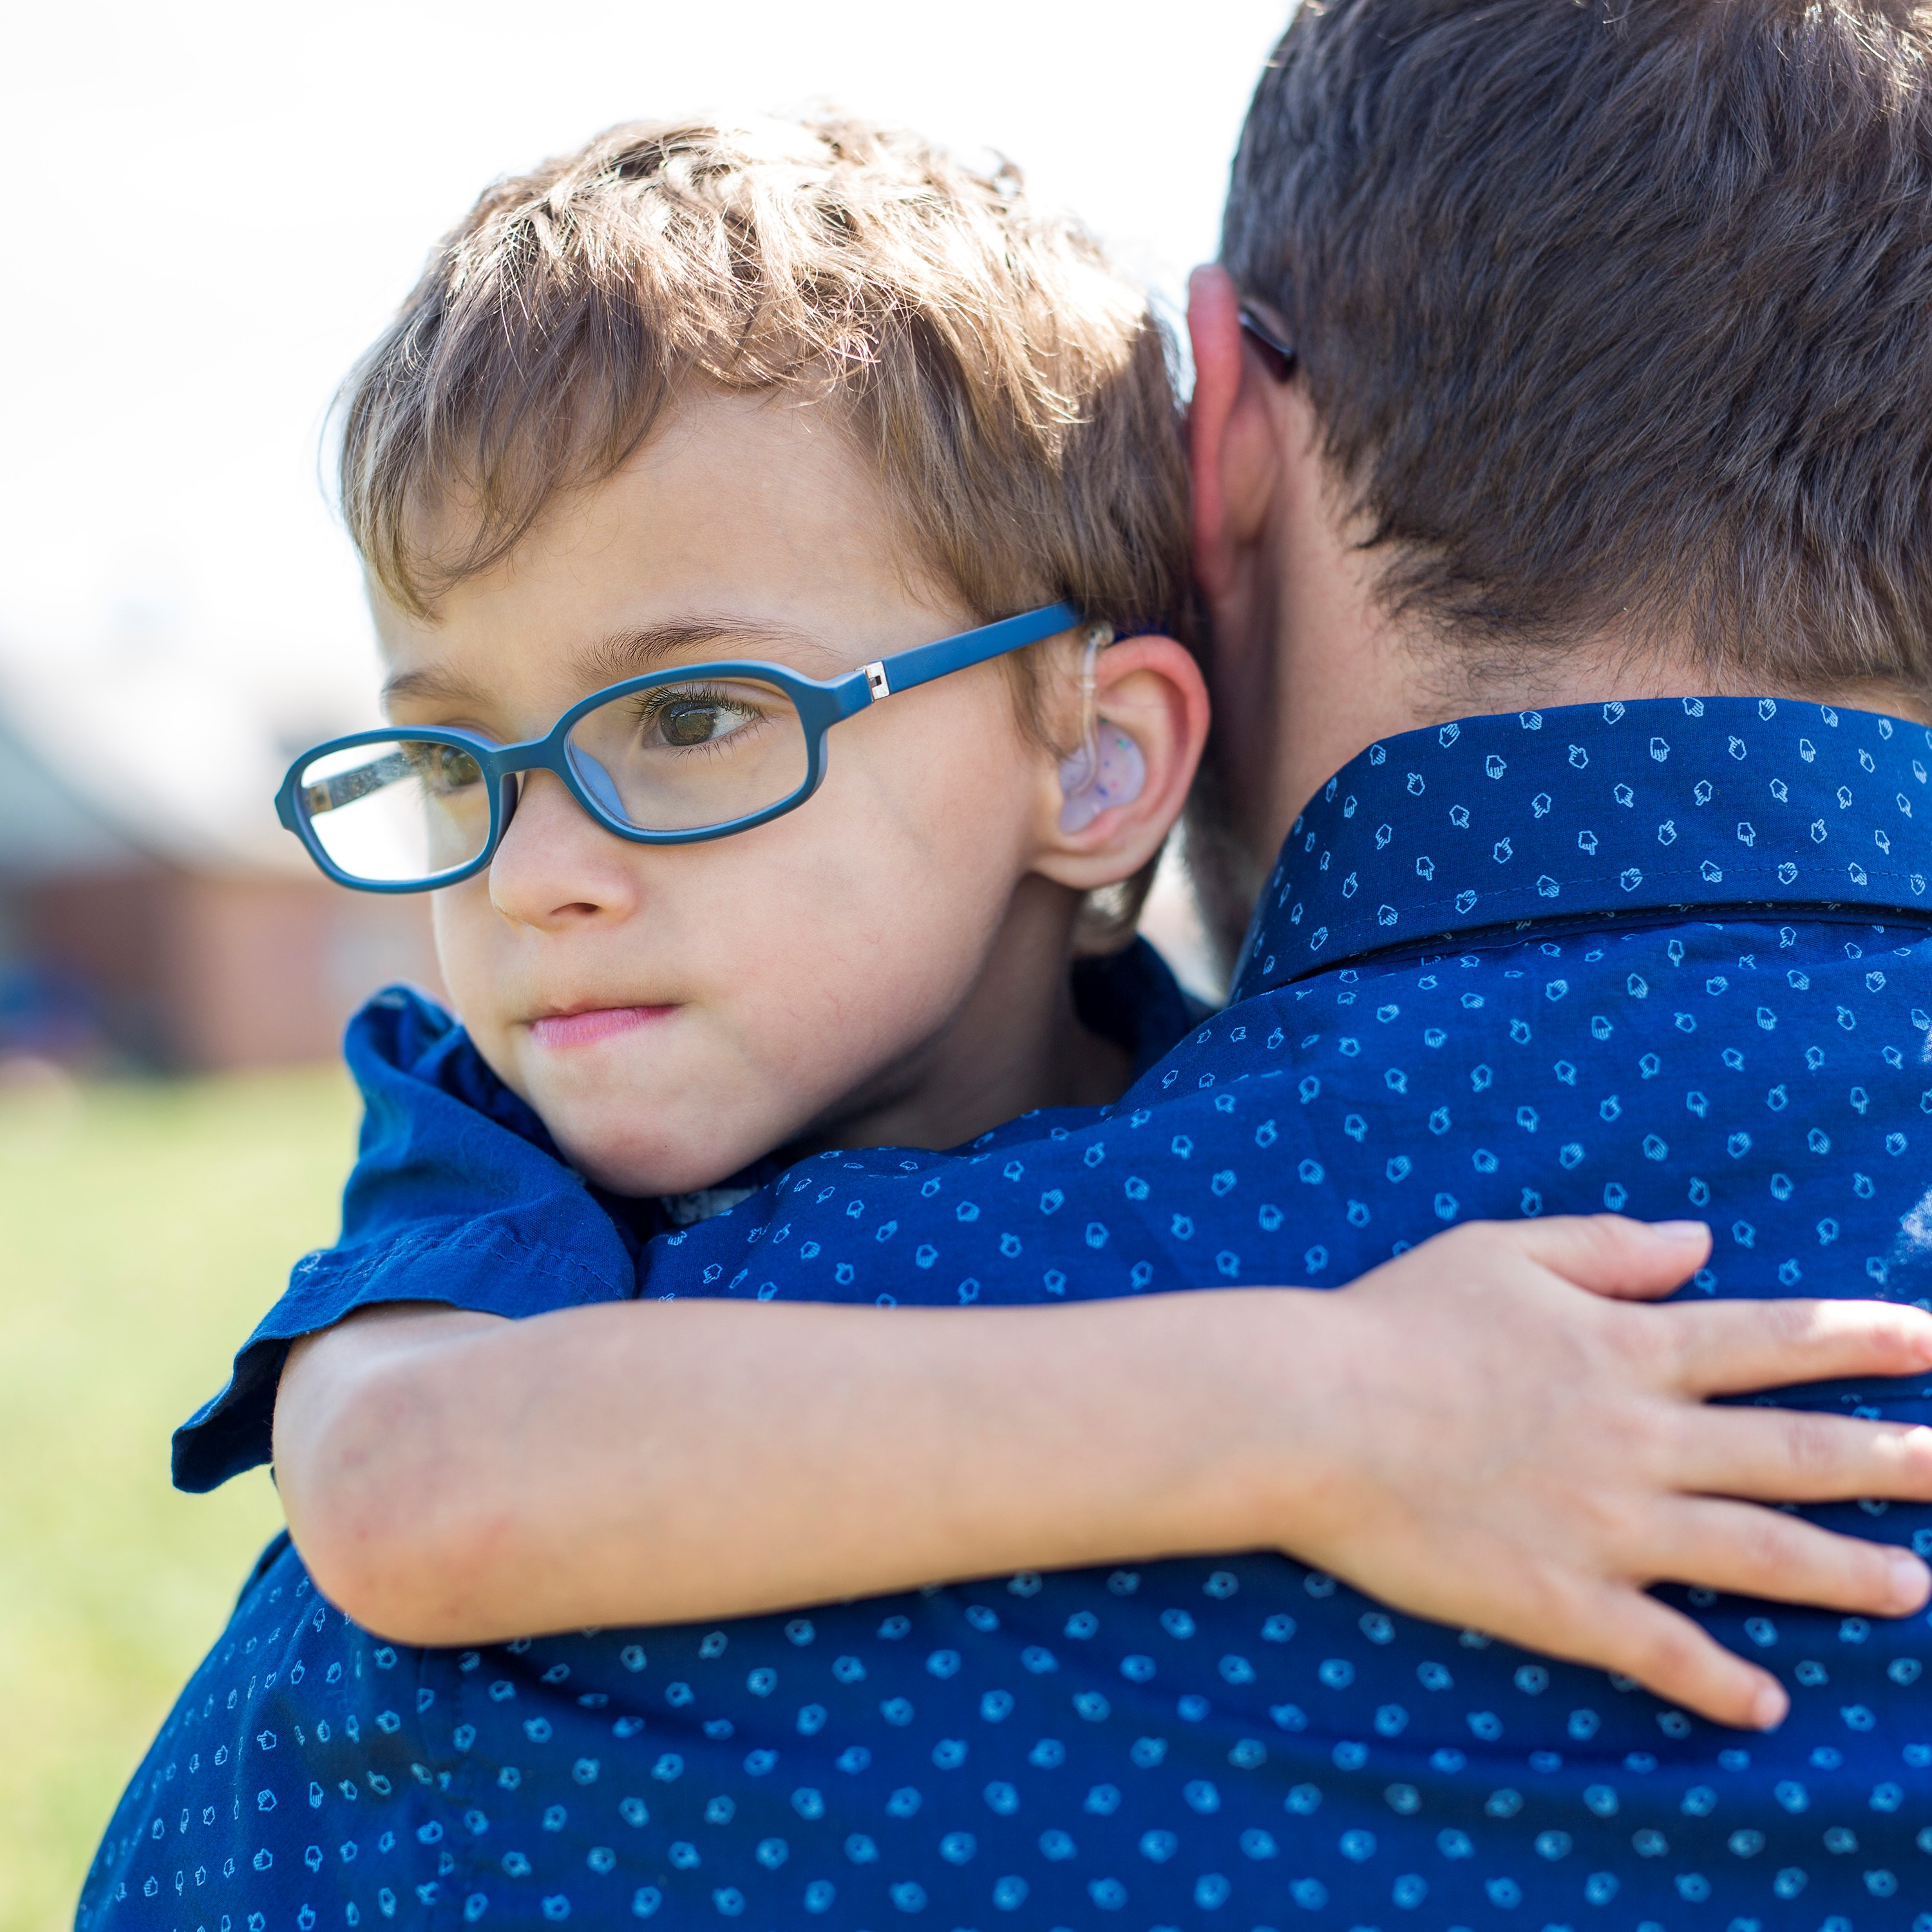 Young boy approximately four years hold is being held by a man. We see the boy's face but not the man's face. The boy has blue glasses and brown hair and seems a little sad.